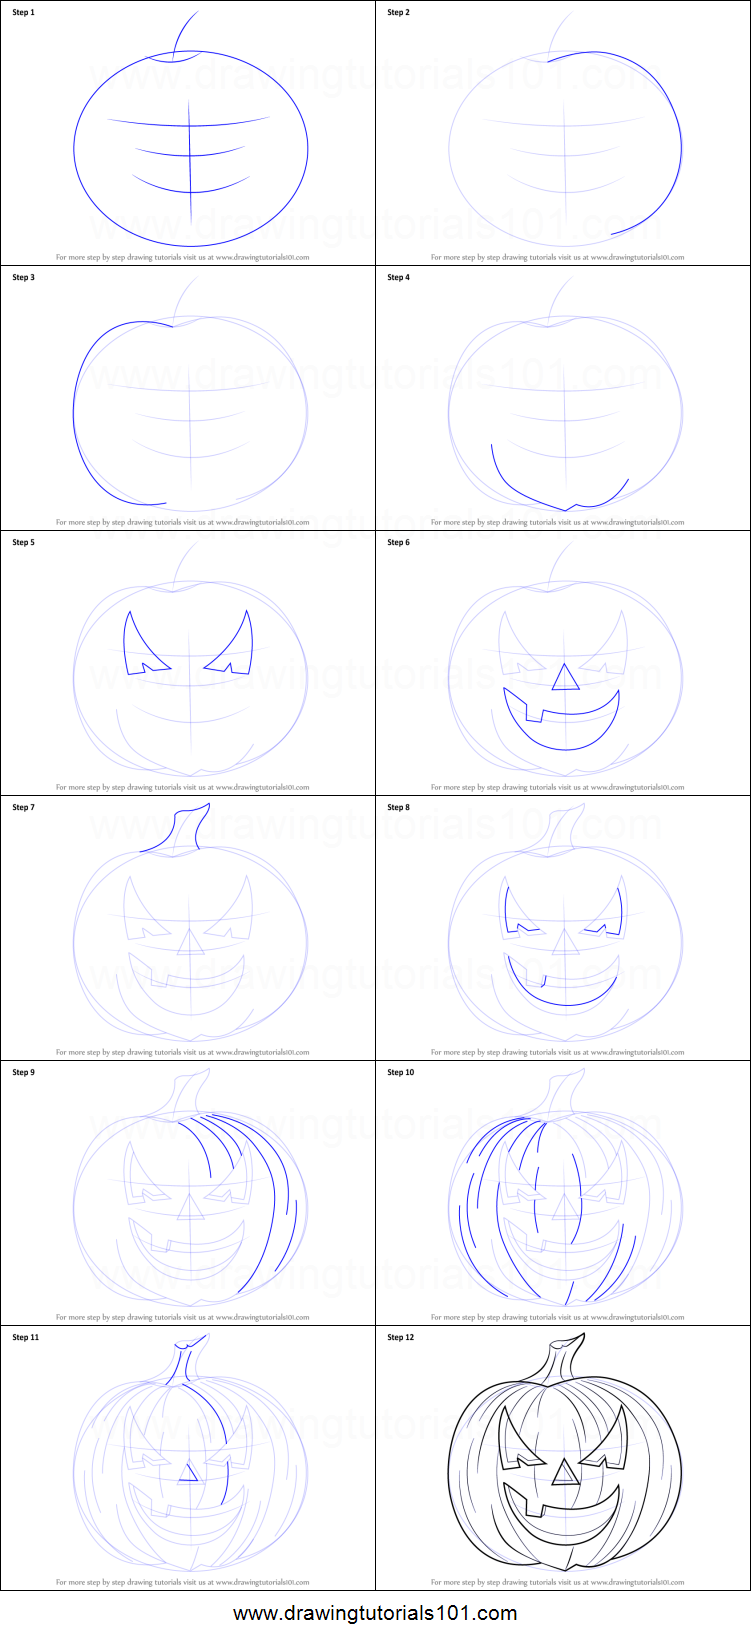 pumpkin drawing step by step. how to draw halloween pumpkin printable step by drawing sheet : drawingtutorials101.com i